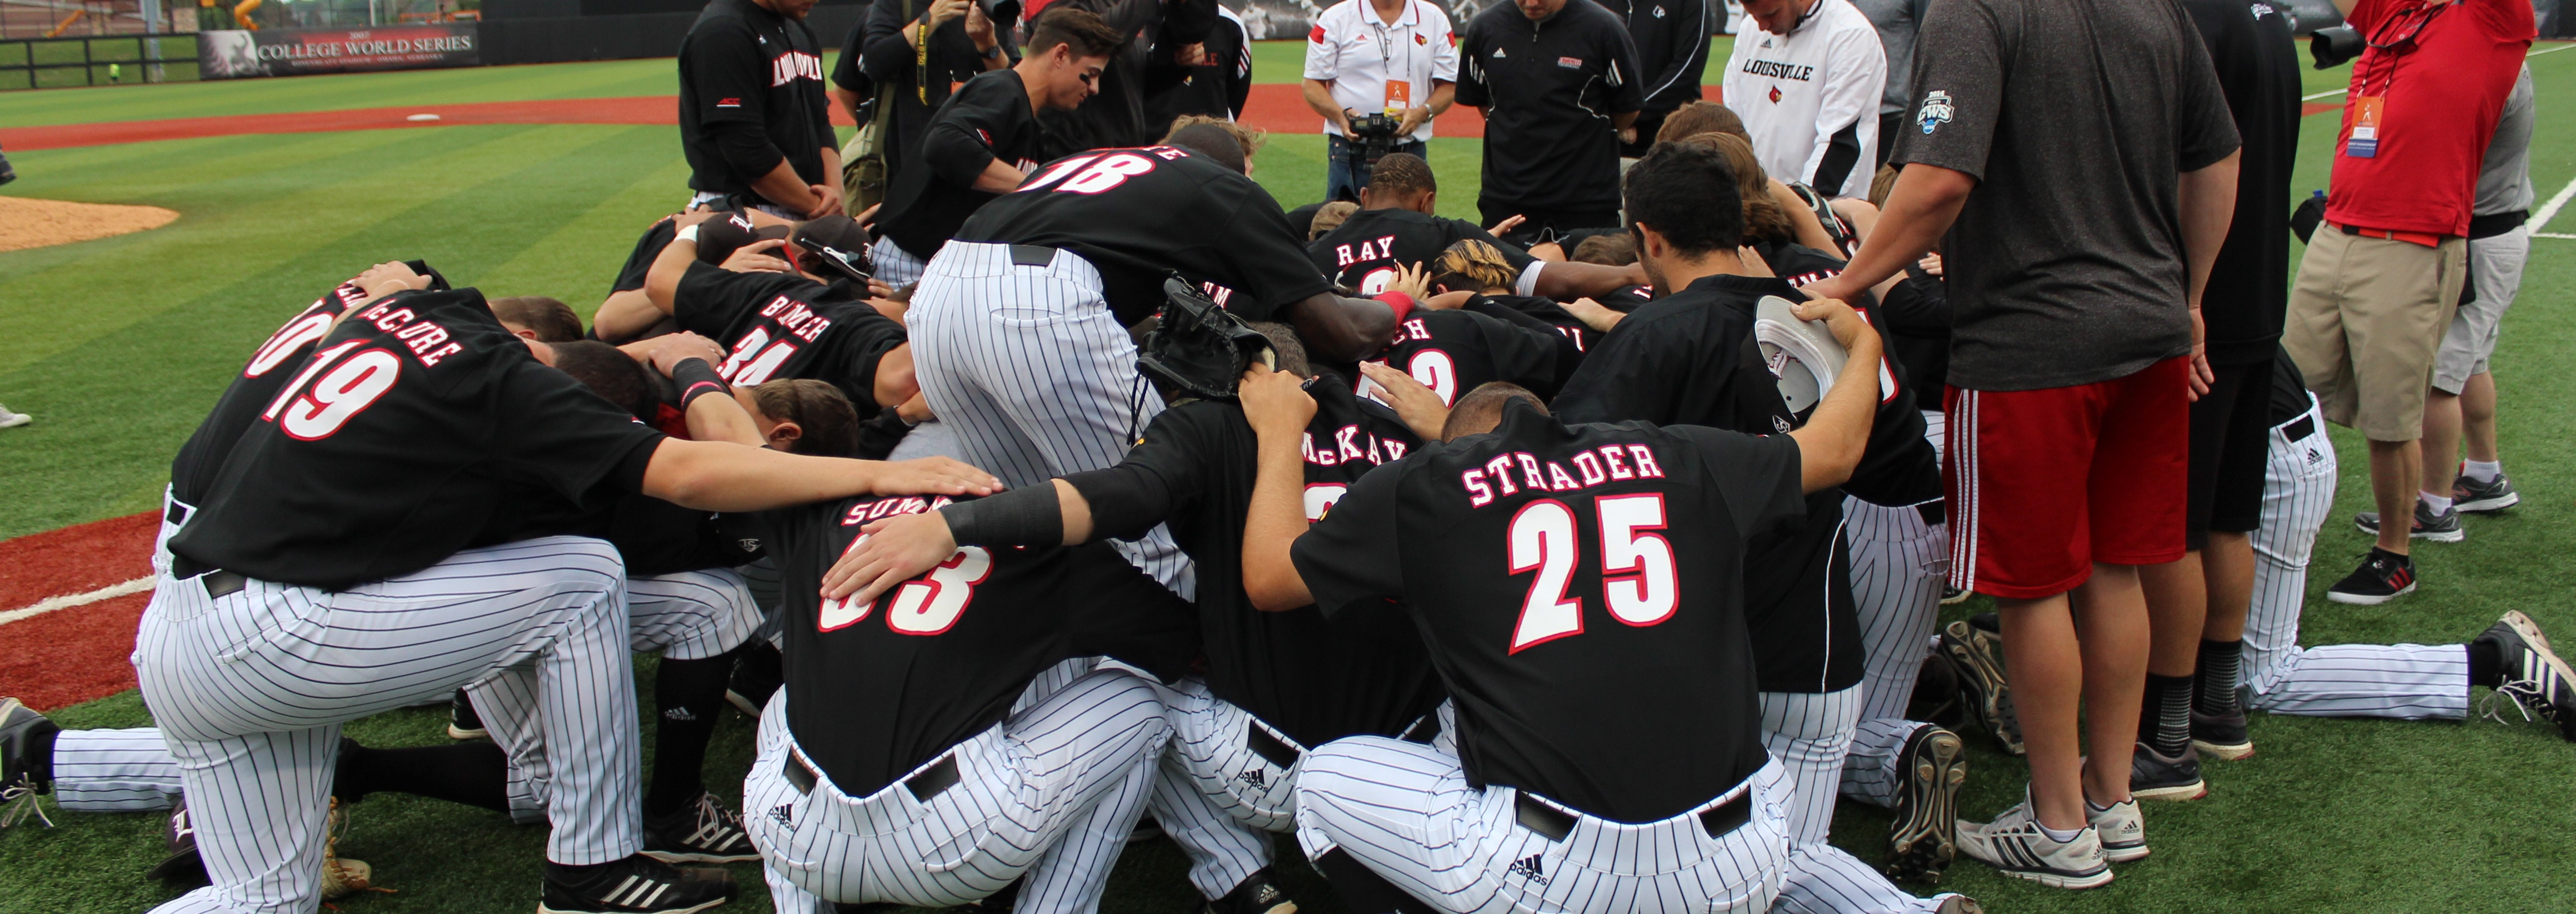 Prayer after Louisville Advances to 2015 Super Regional. Louisville vs. Michigan 5-31-15 Photo by Mark Blankenbaker Fitted